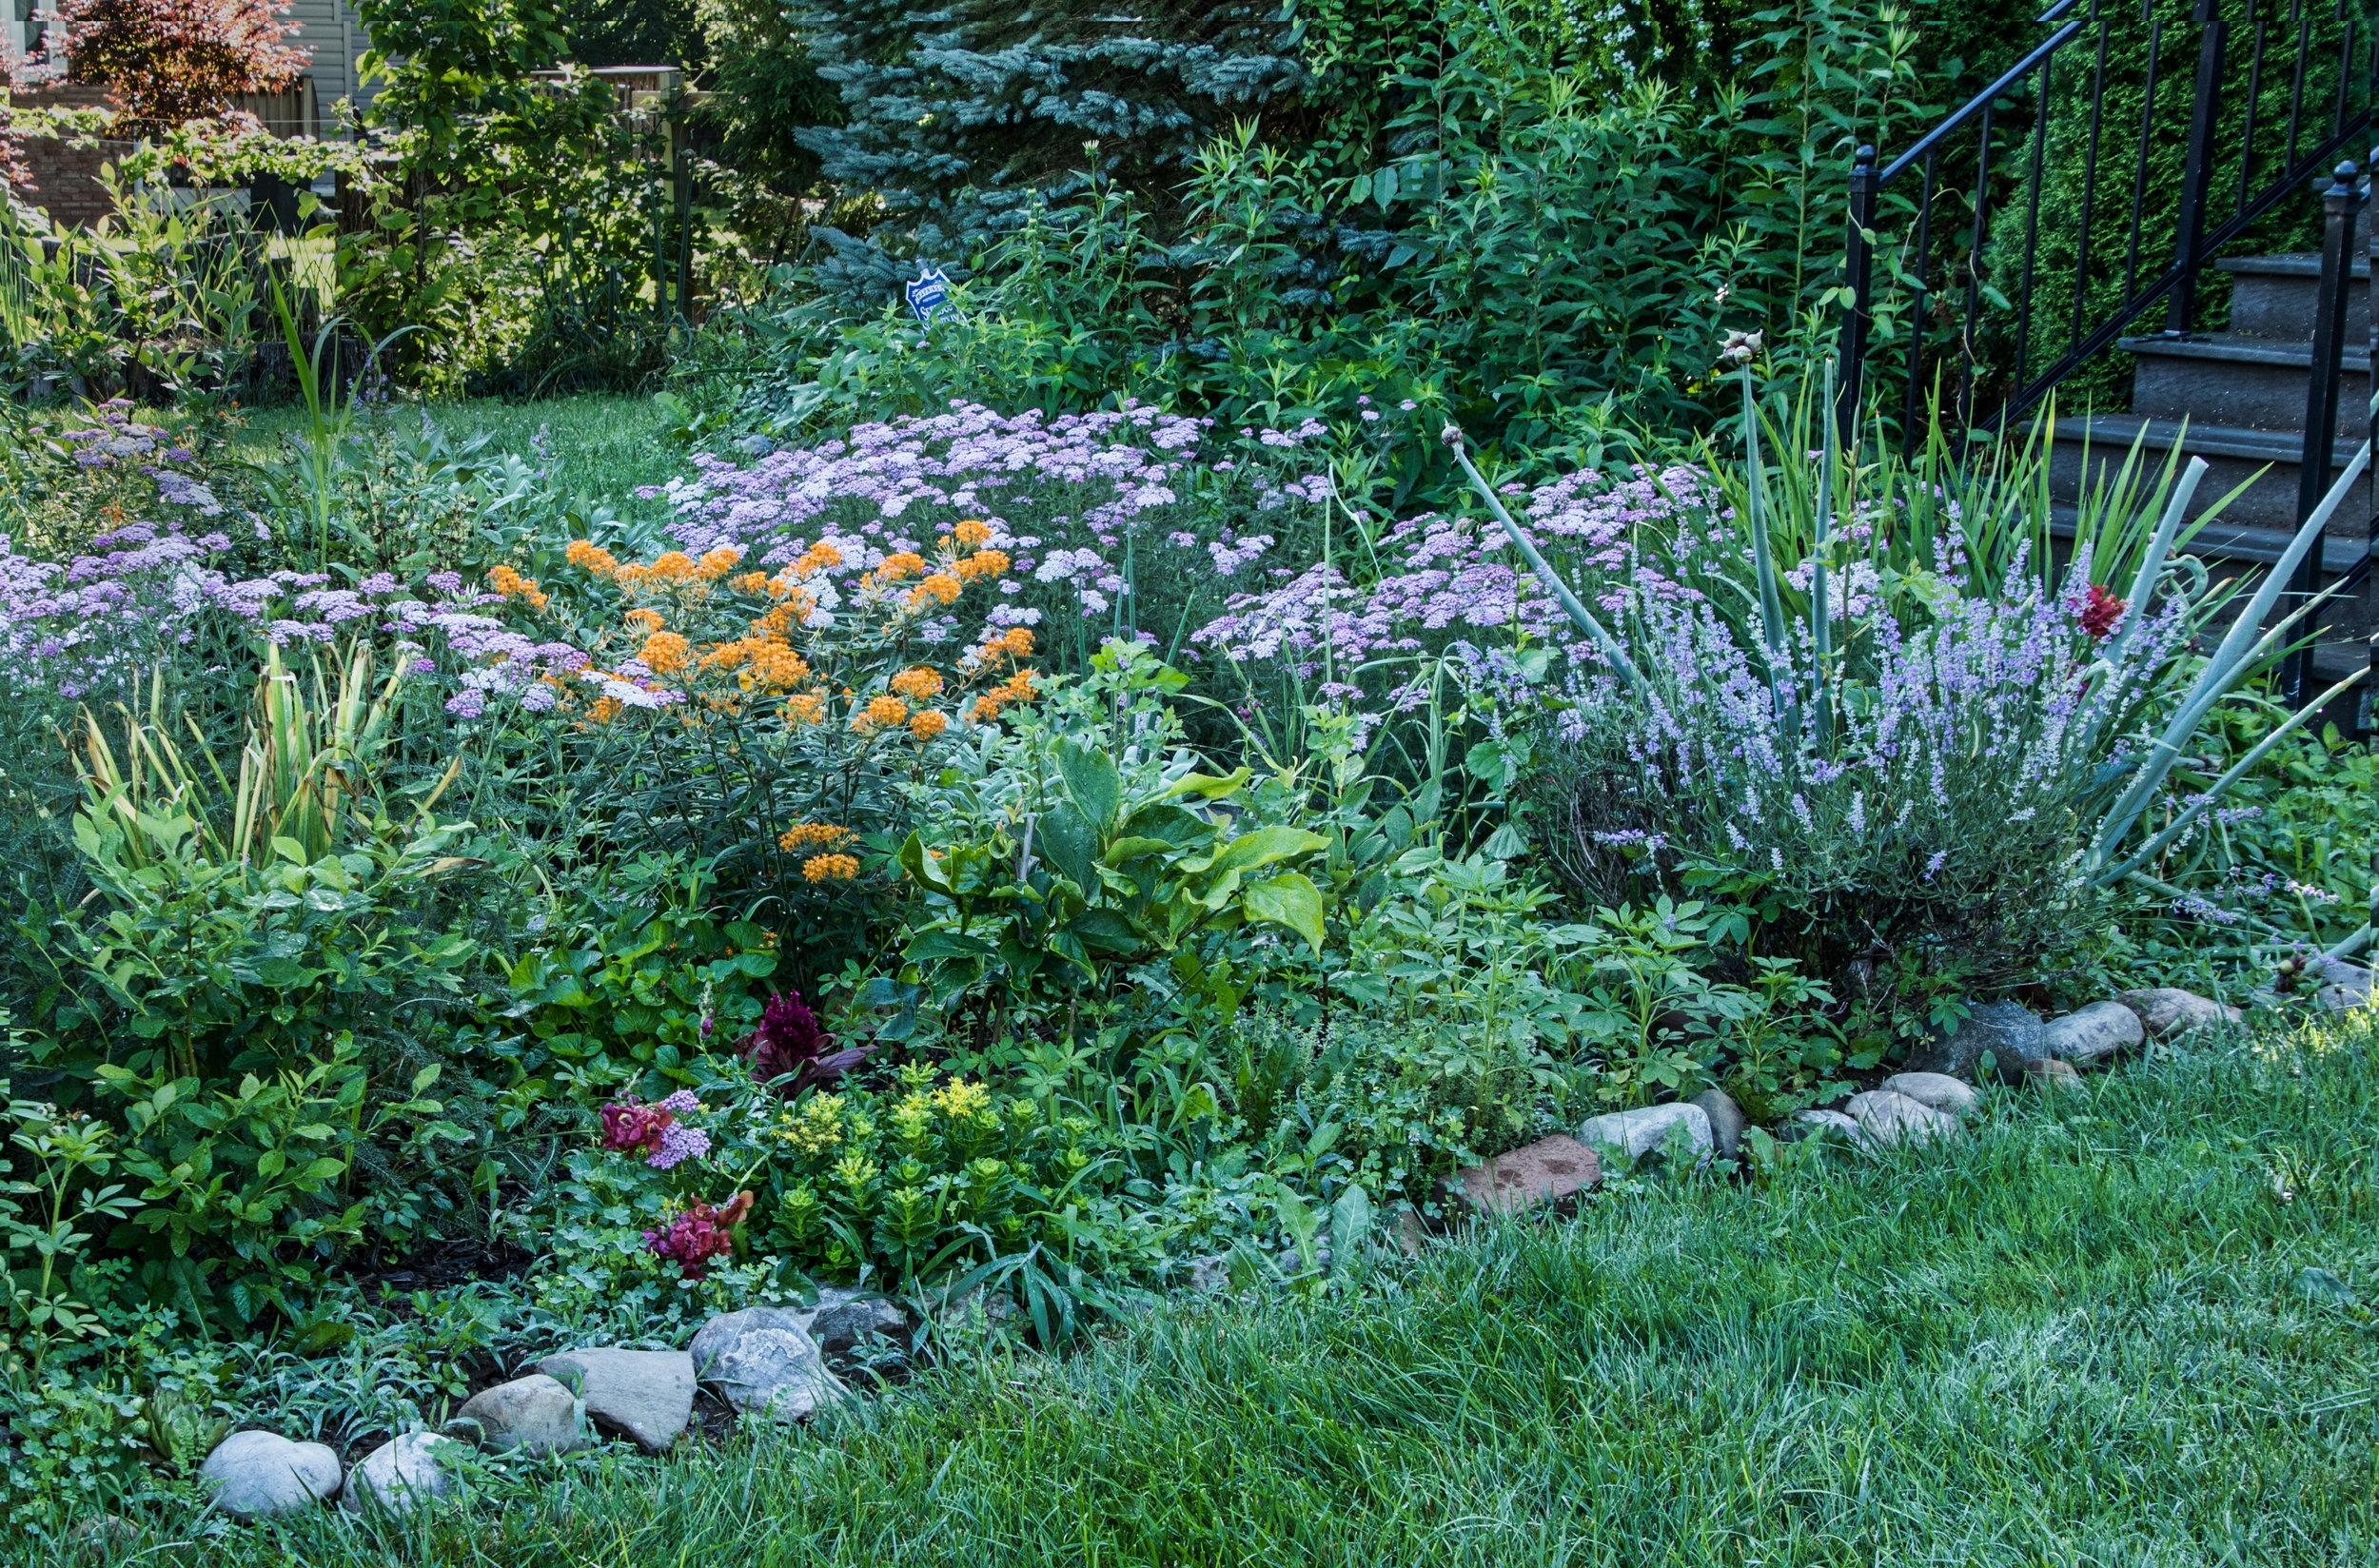 A front yard landscape incorporating edible and ecological plants